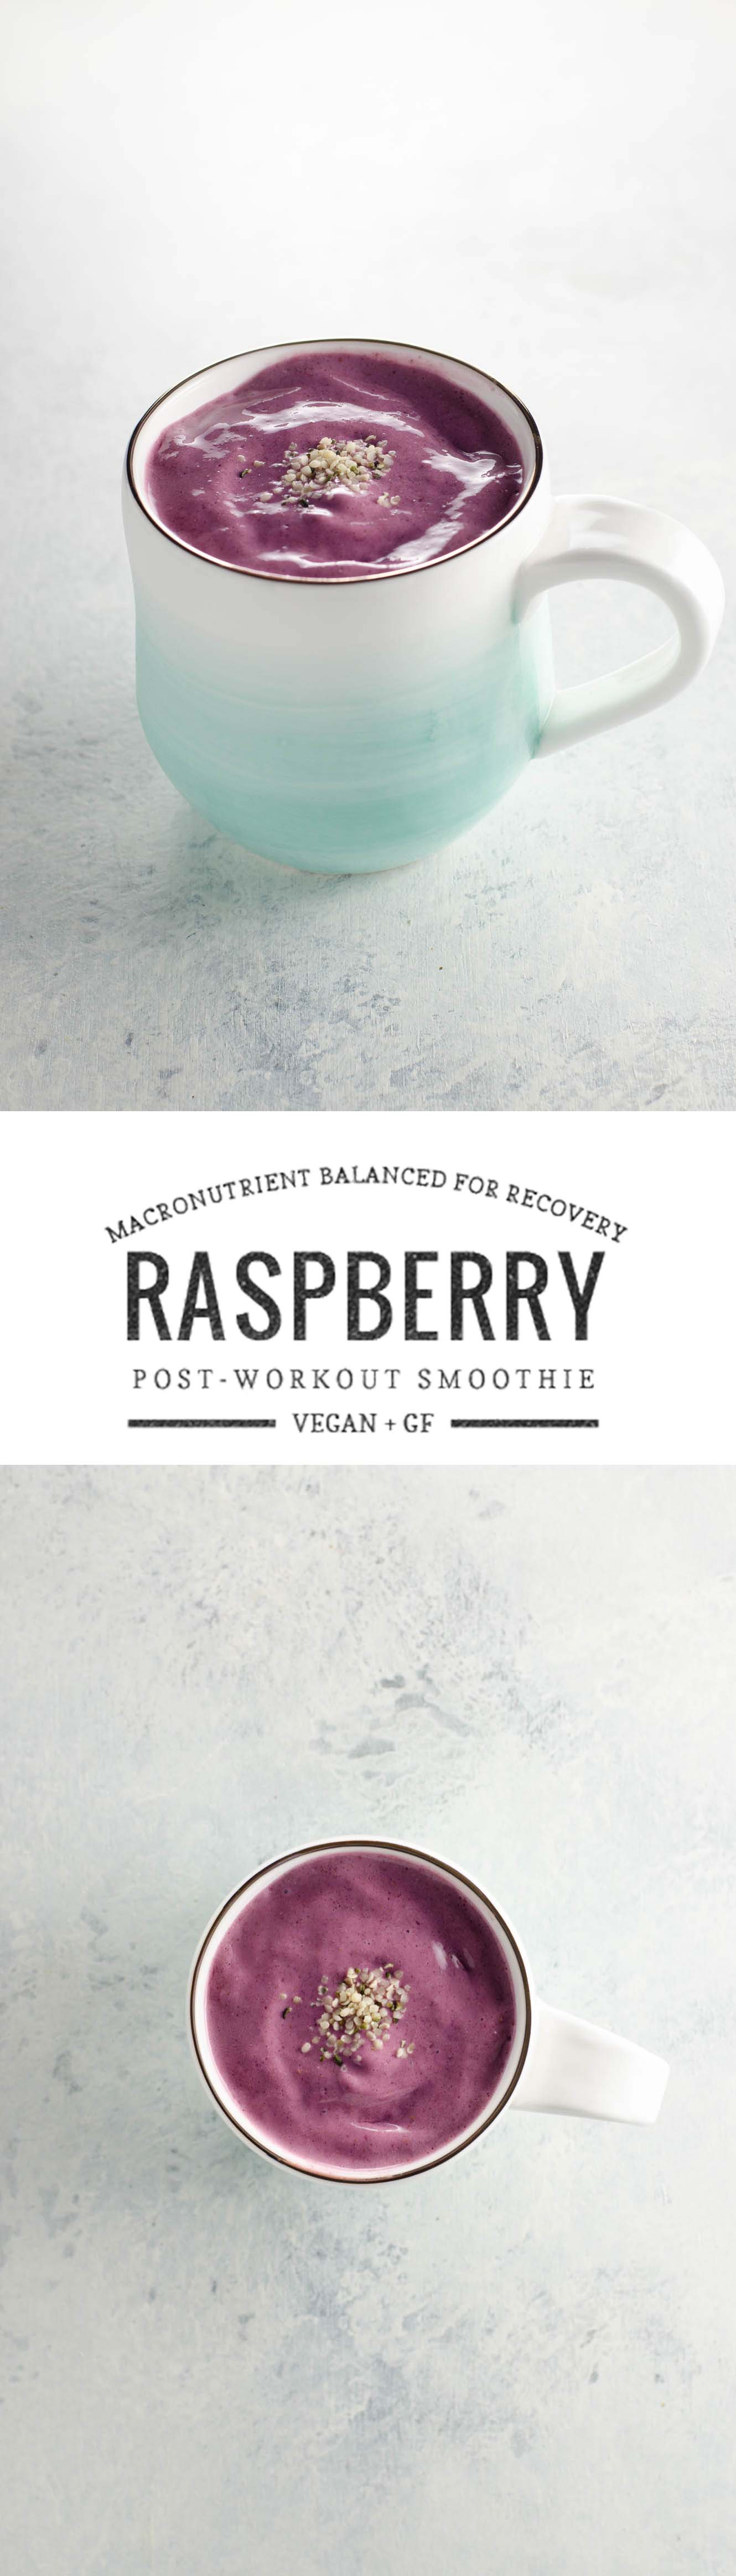 This raspberry chia post-workout smoothie is macronutrient balanced for muscle recovery. Vegan, GF and low-glycemic.